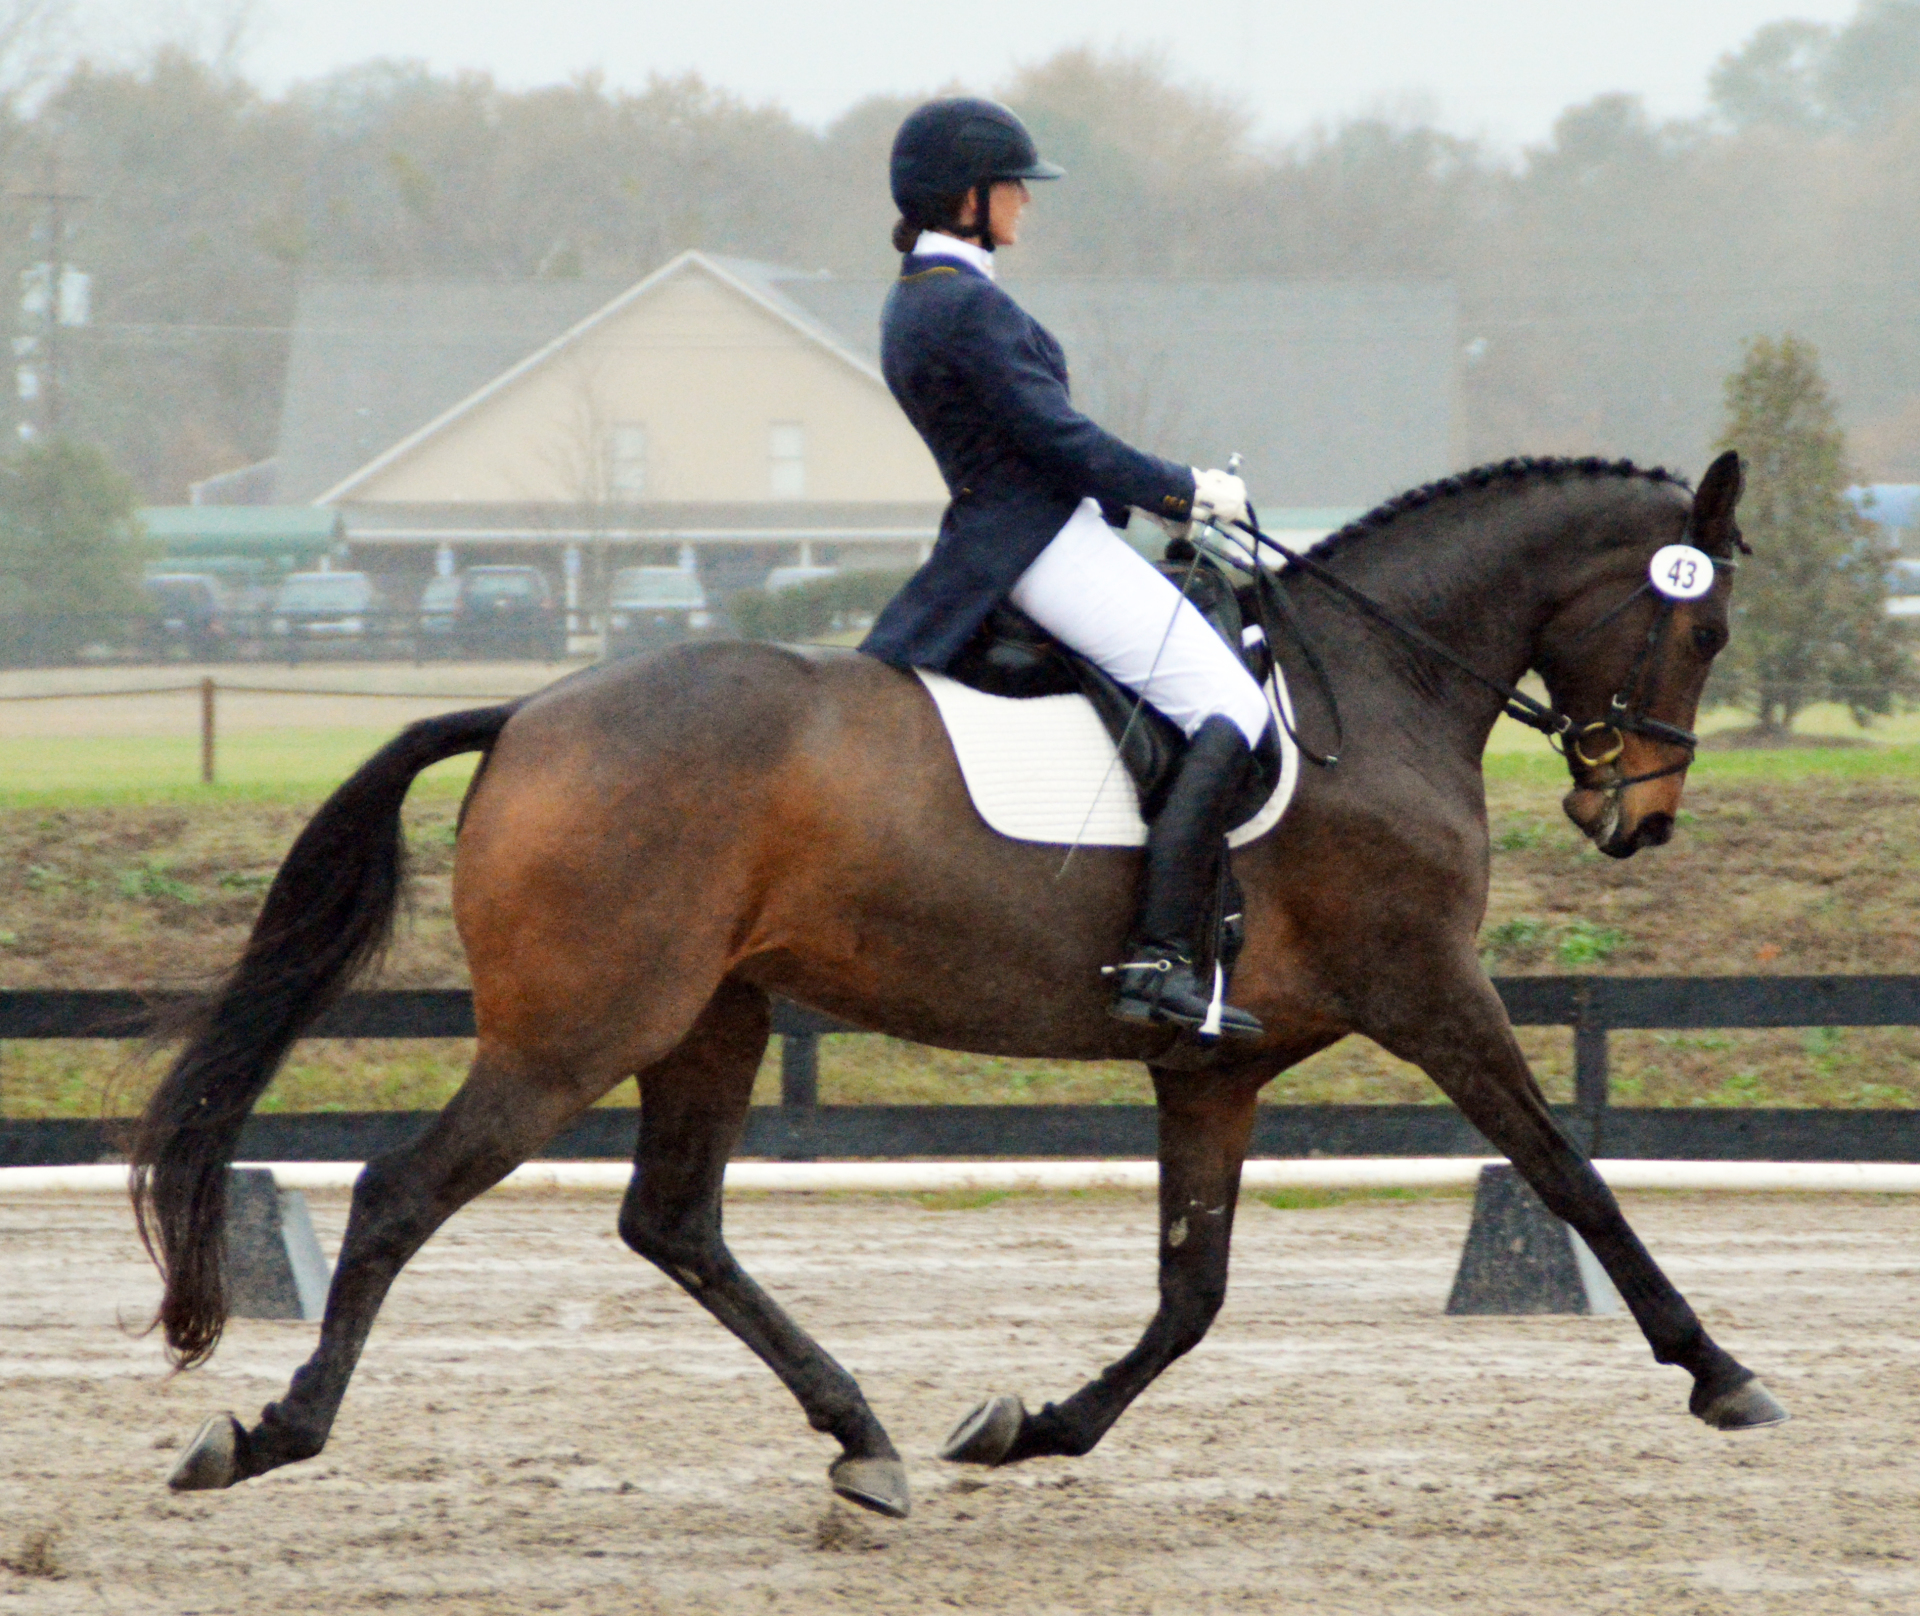 FEI dressage horse for sale